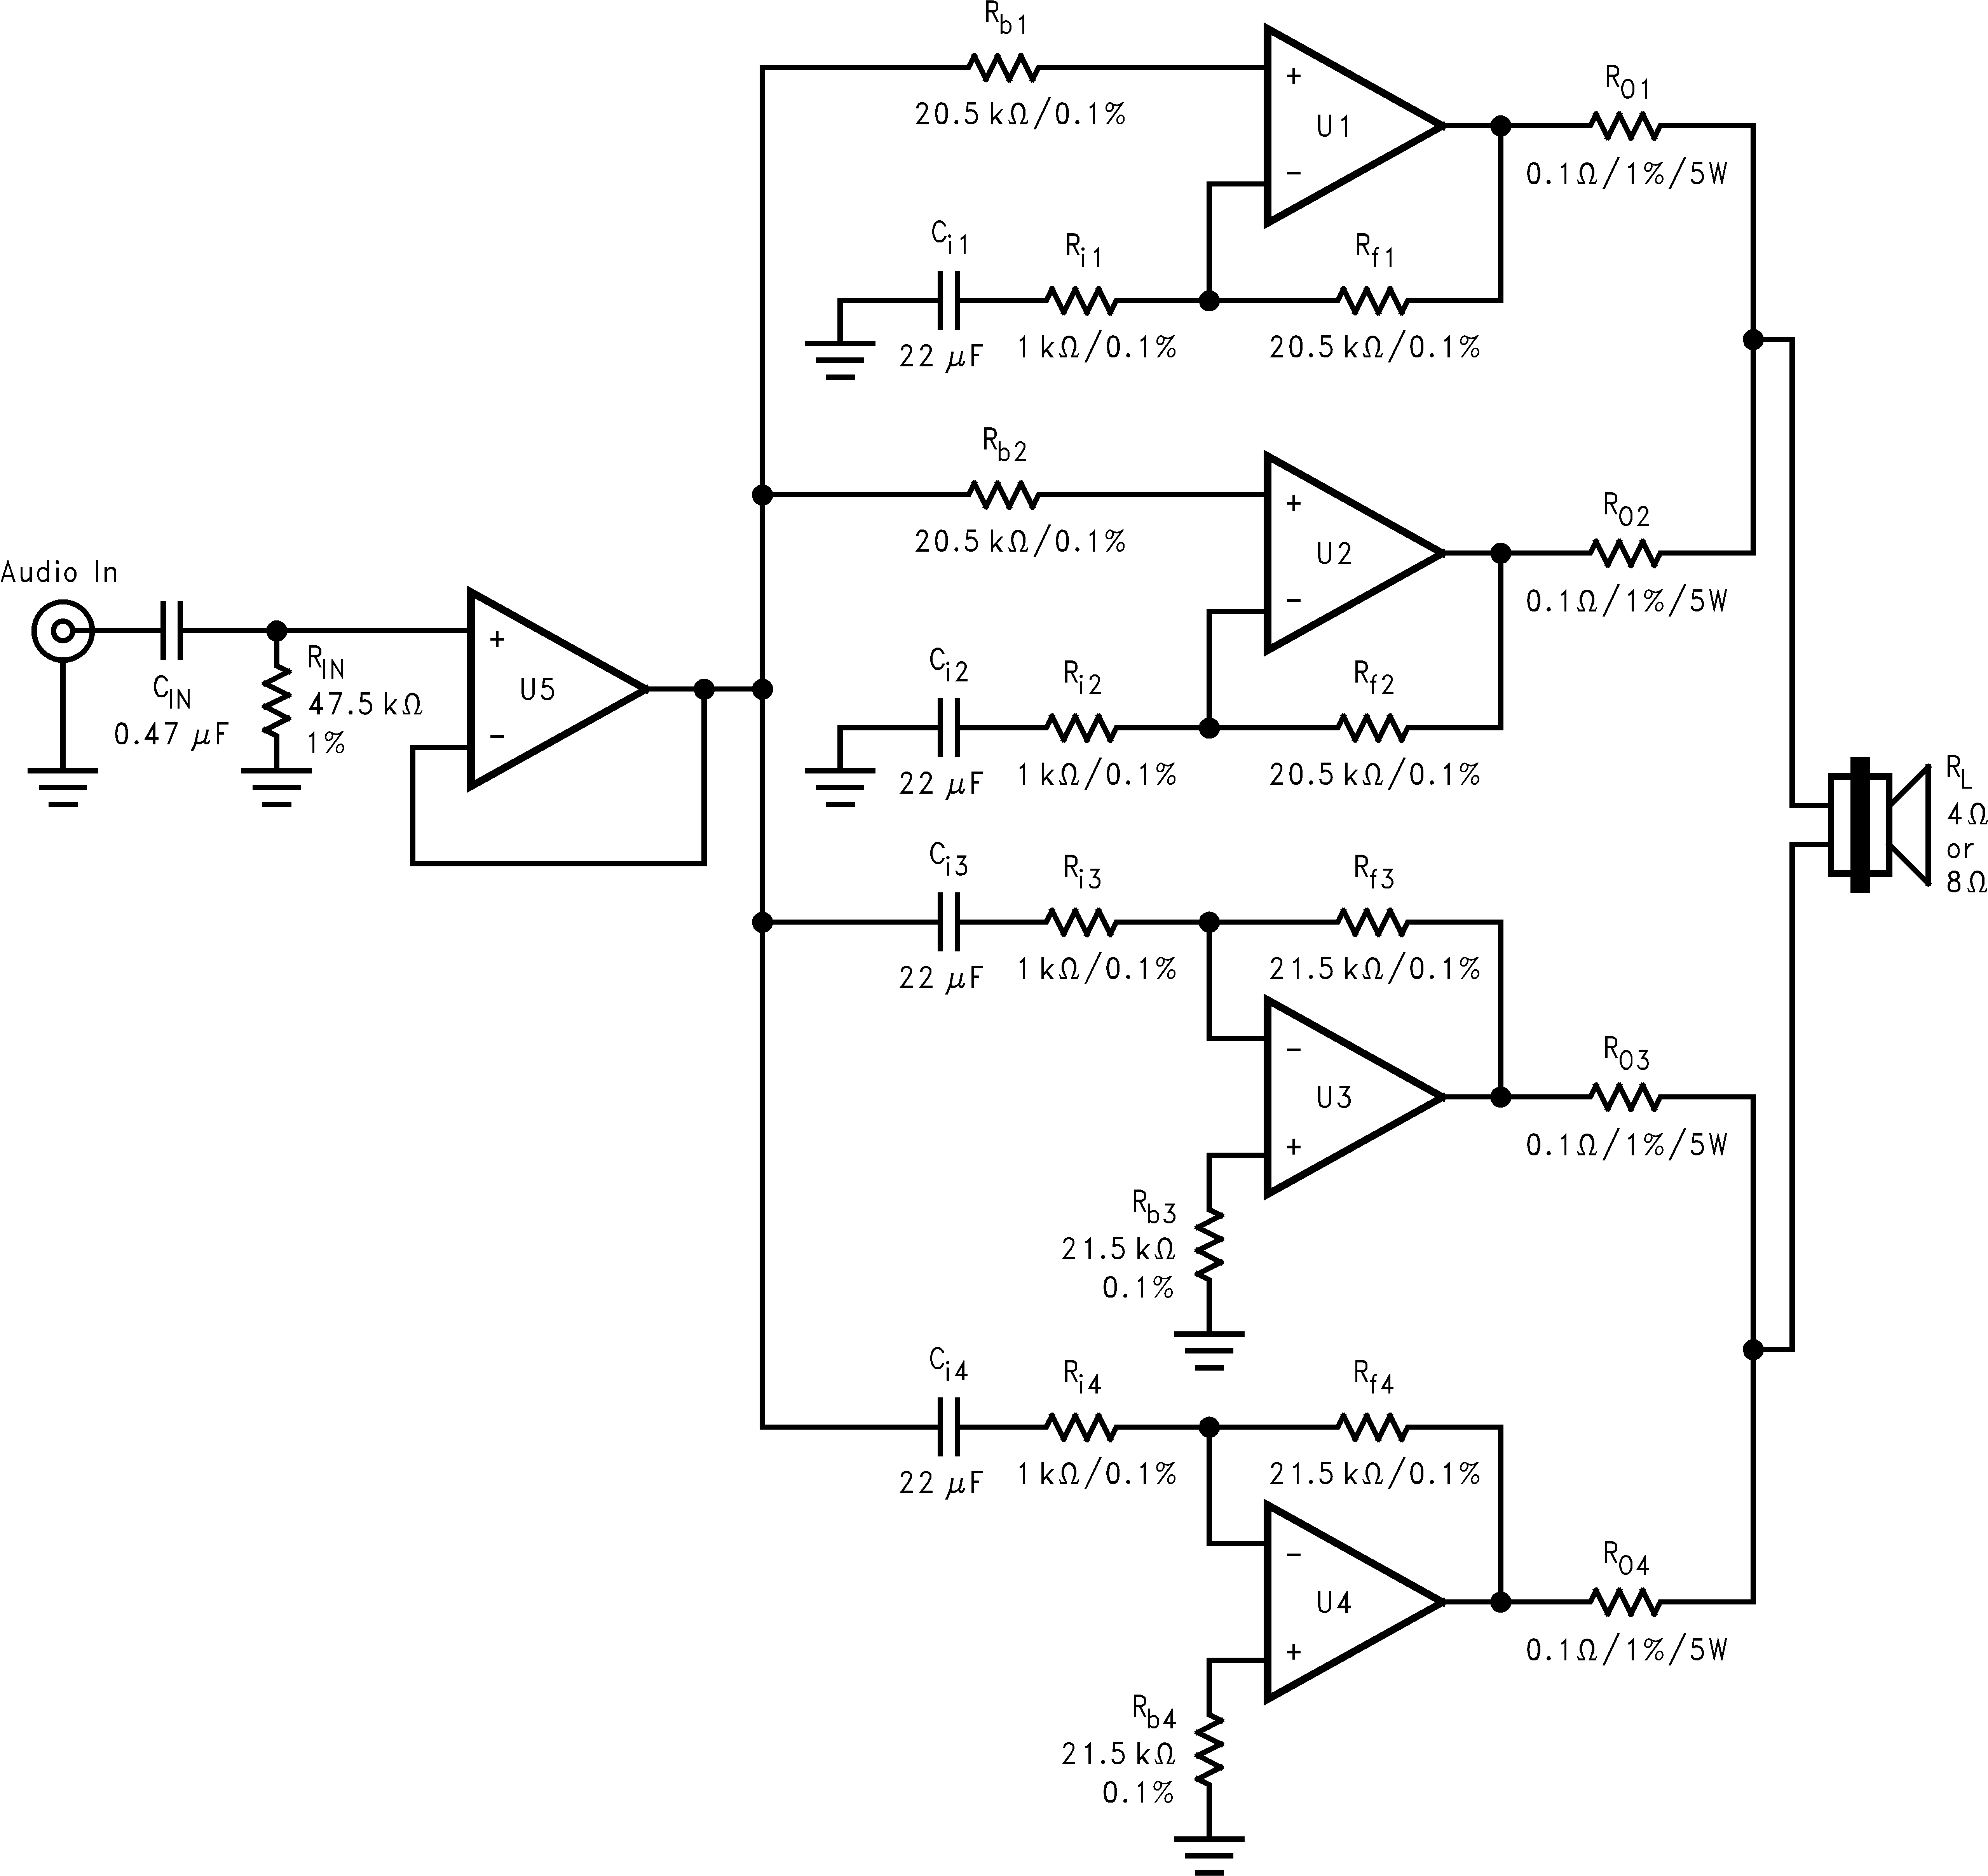 www.ti.com BPA200 200W Bridged/Parallel Circuit 7.2.4 Basic Bridged/Parallel Amplifier Schematic Figure 17.